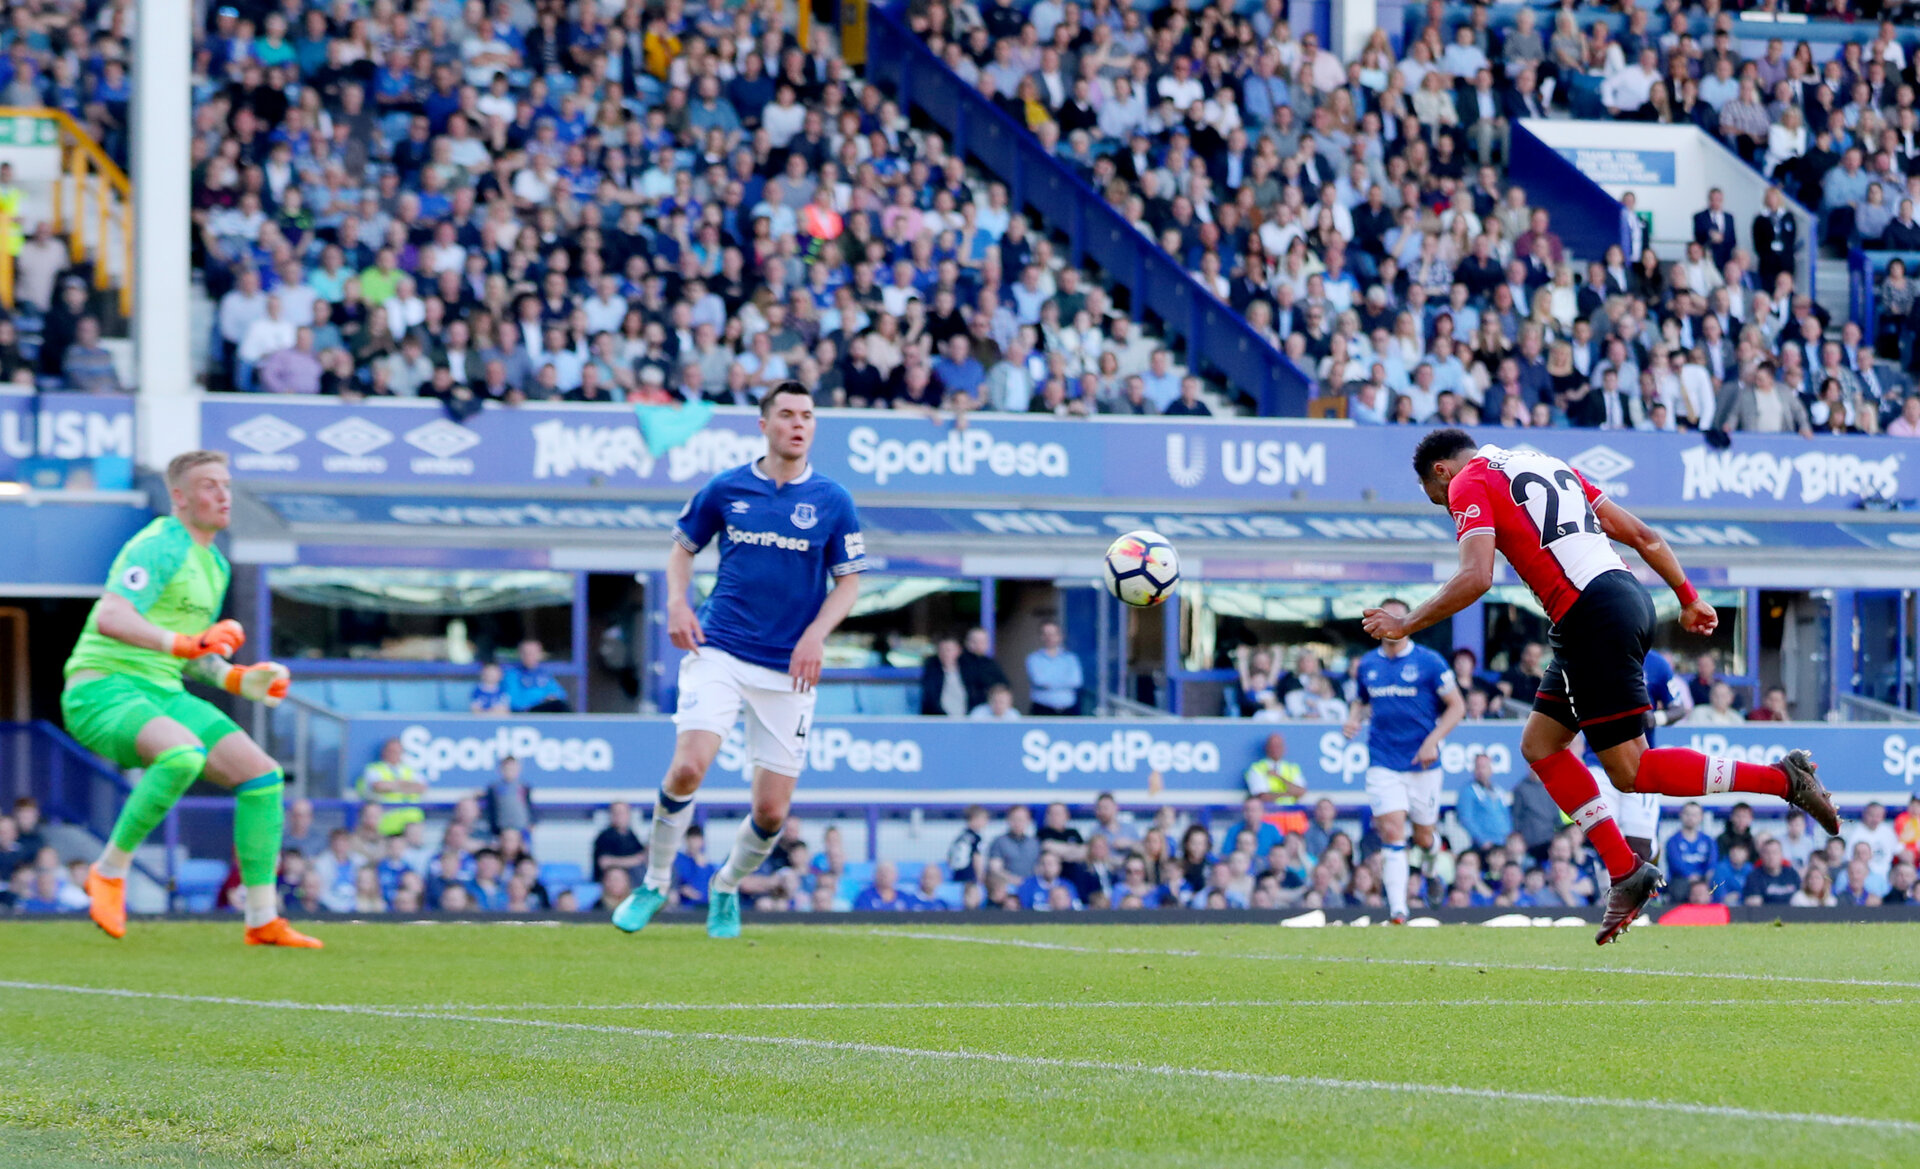 LIVERPOOL, ENGLAND - MAY 05: Nathan Redmond of Southampton puts his team 1-0 up with a header during the Premier League match between Everton and Southampton at Goodison Park on May 5, 2018 in Liverpool, England. (Photo by Matt Watson/Southampton FC via Getty Images)